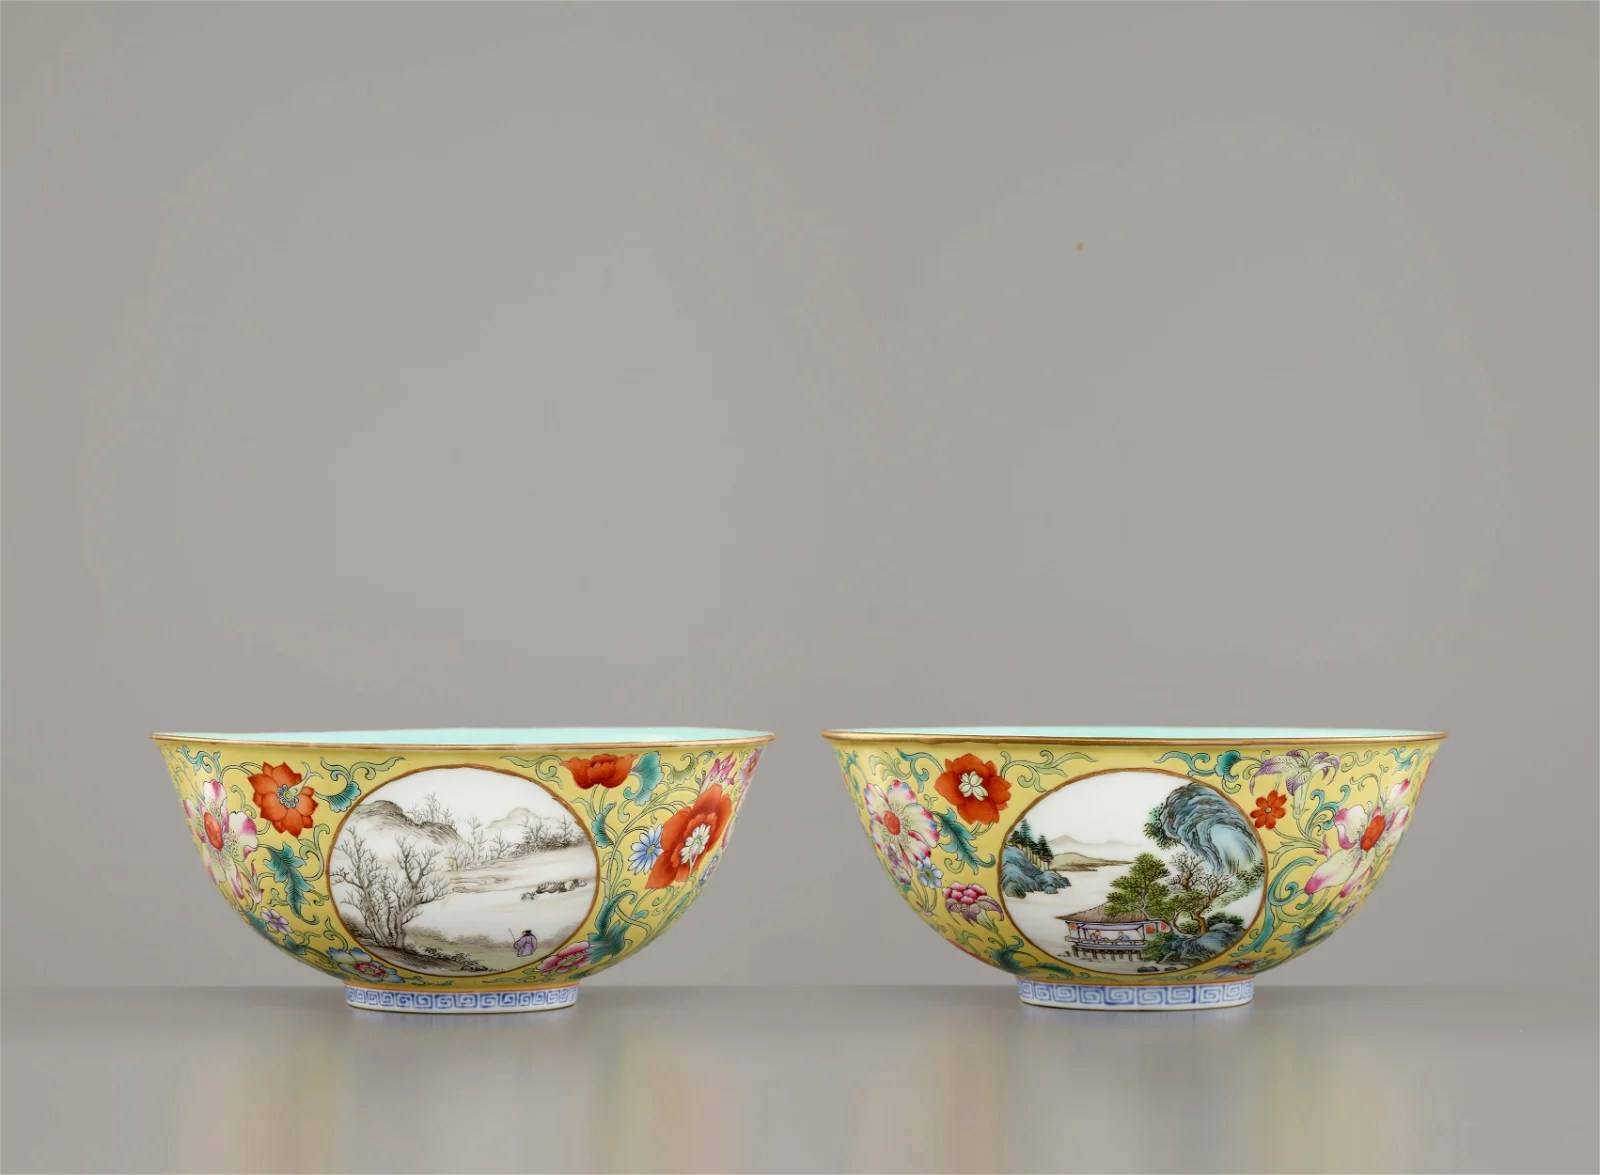 PAIR OF YELLOW-GROUND ENAMELLED 'LANDSCAPE' BOWLS